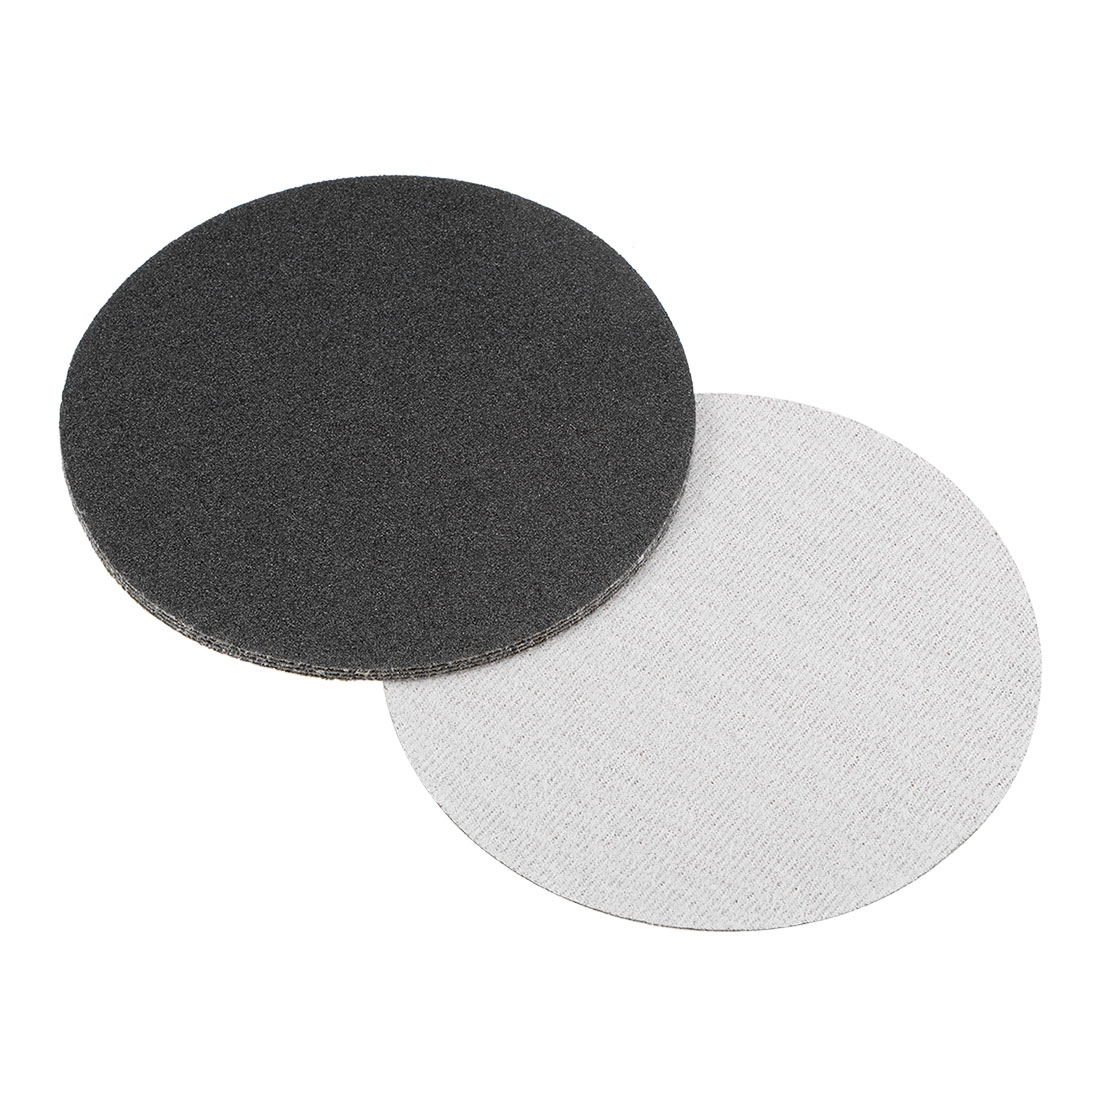 5 inch Wet Dry Discs 80 Grit Hook and Loop Sanding Disc Silicon Carbide 5pcs